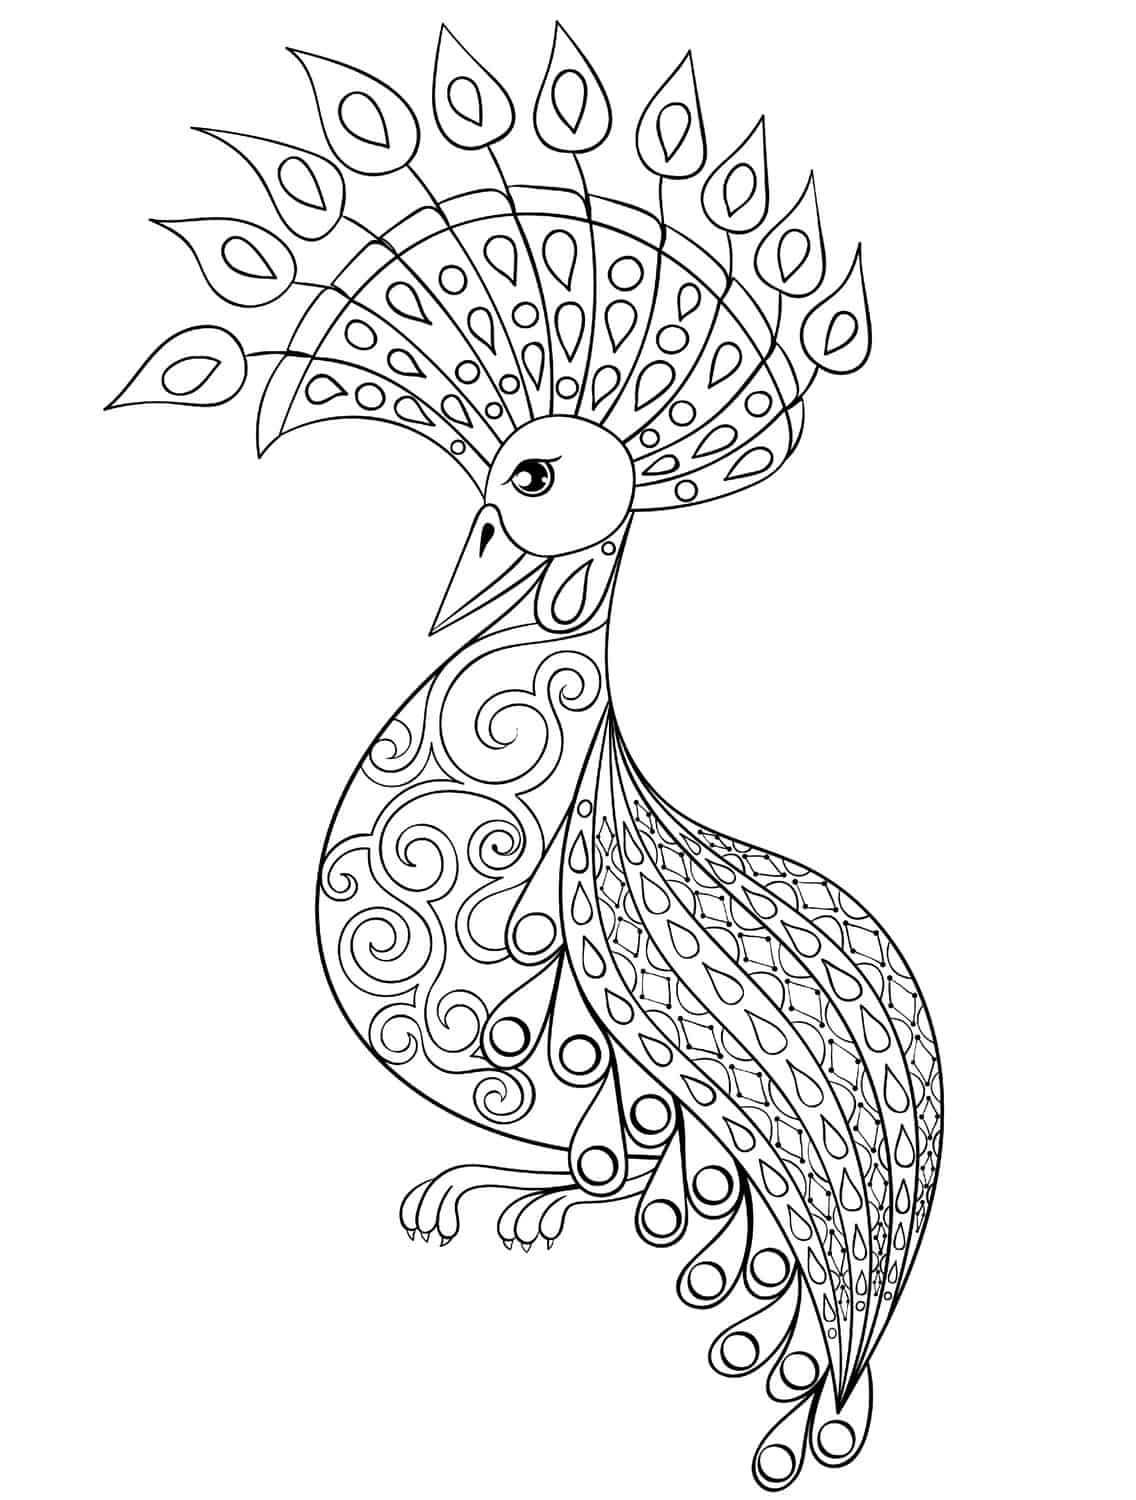 Aninimal Book: Adult Coloring Peacock Feather Coloring Pages